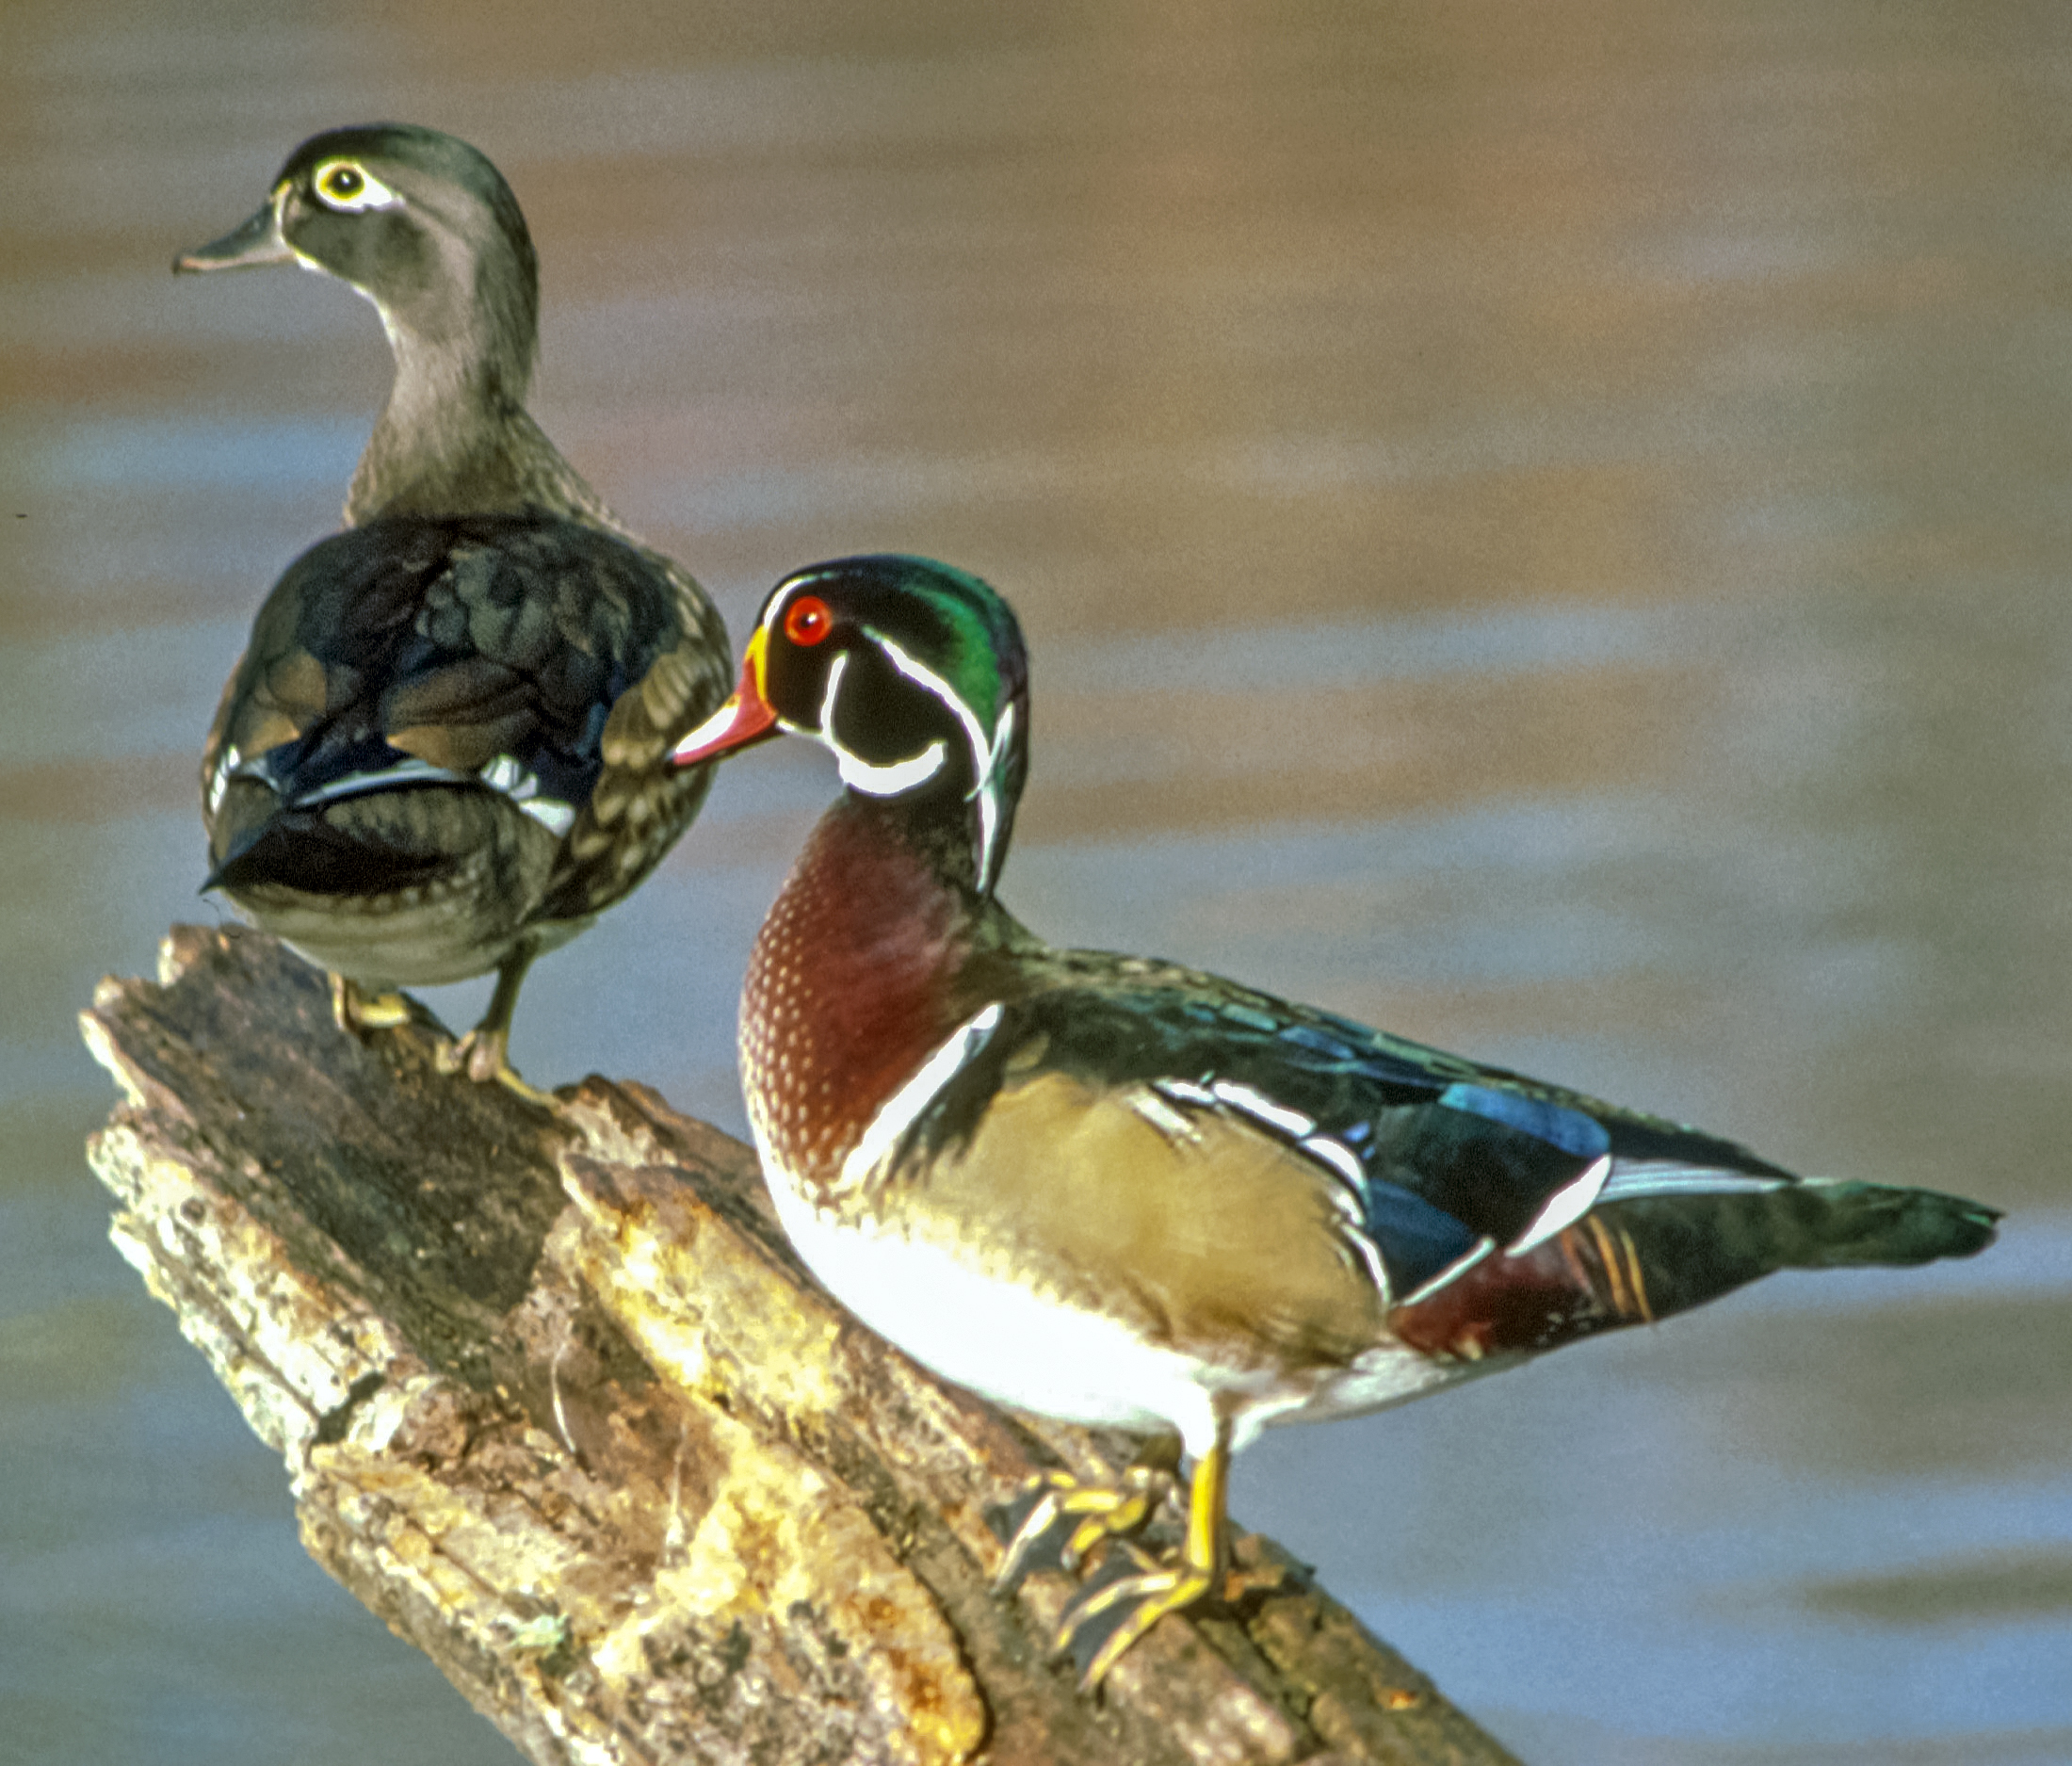 https://upload.wikimedia.org/wikipedia/commons/d/da/Woodduck95.jpg